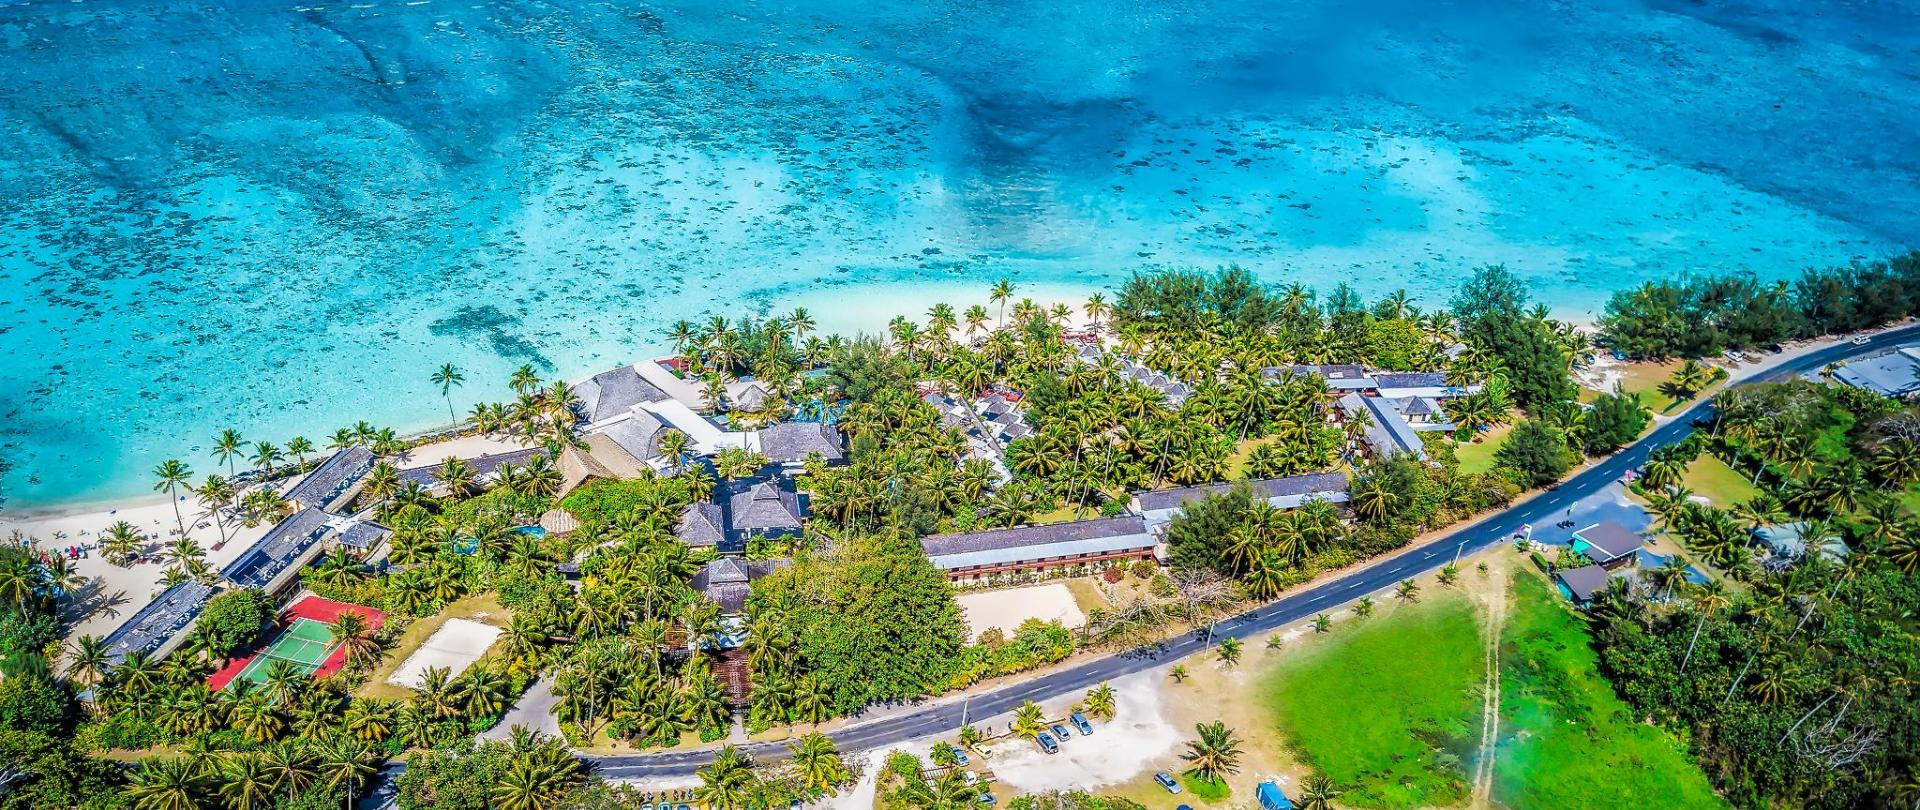 Il Rarotongan Beach Resort & Spa